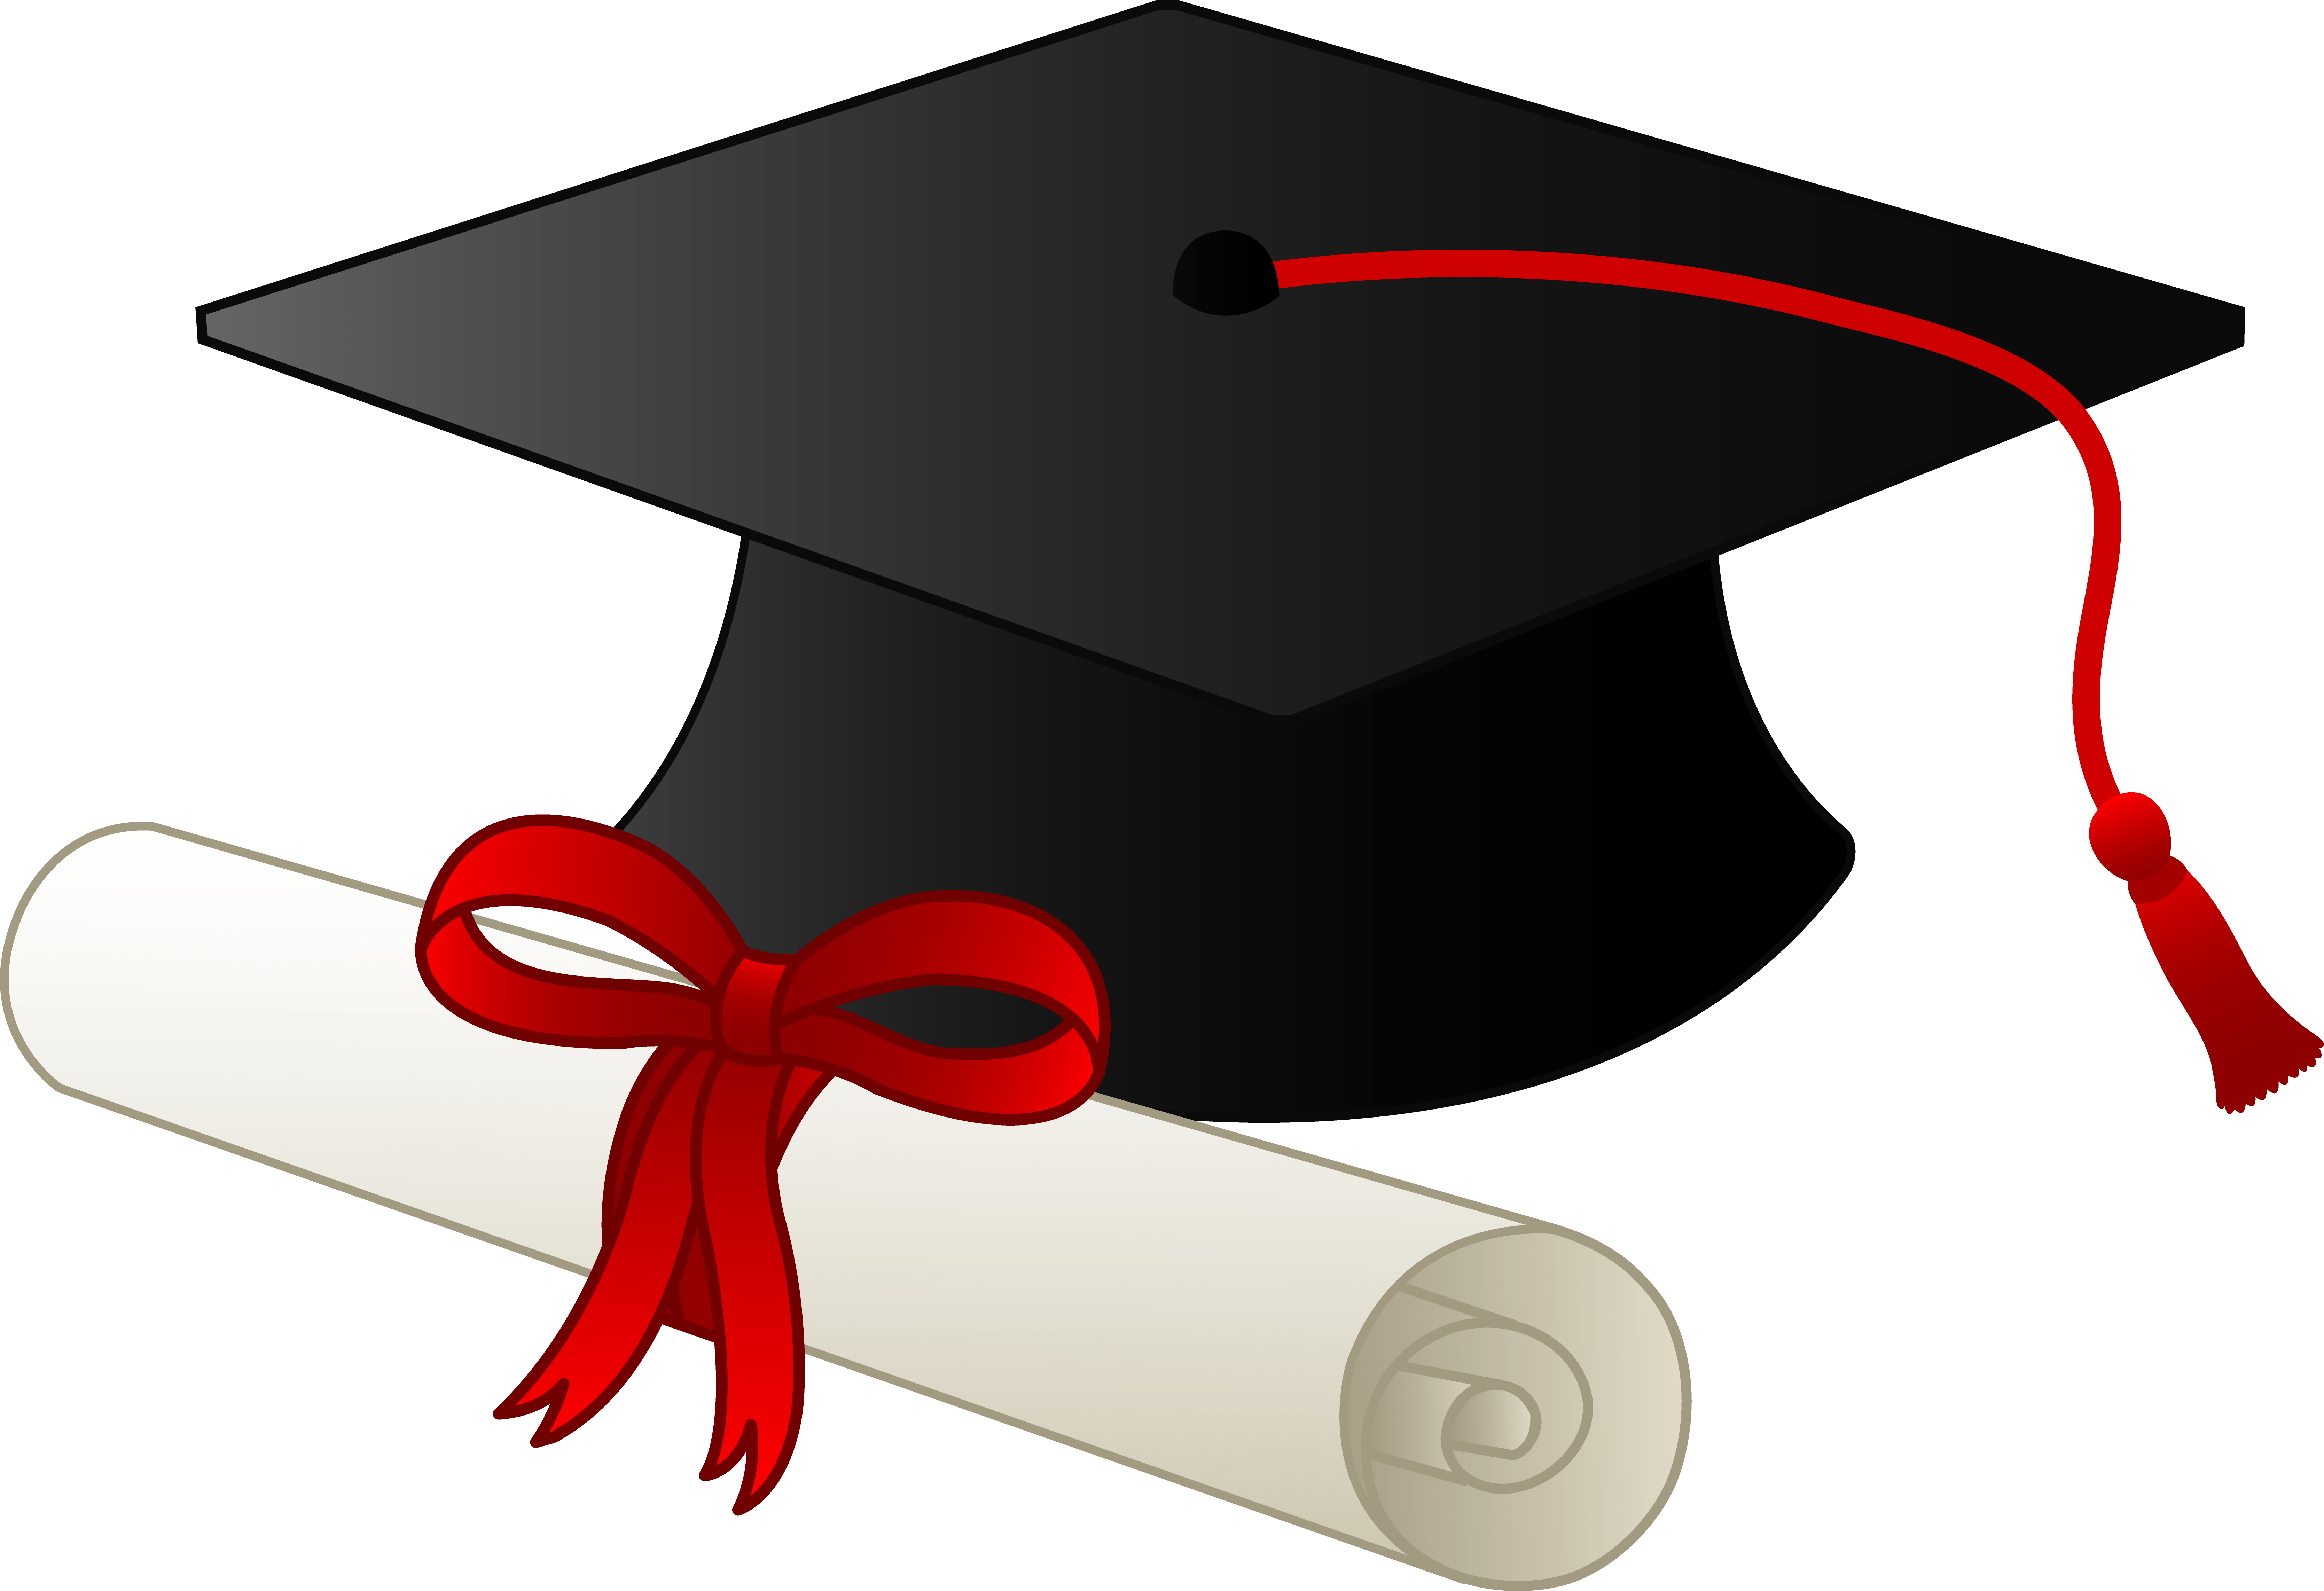 High school diploma clipart clipart royalty free stock How Important are Diplomas after High School? clipart royalty free stock